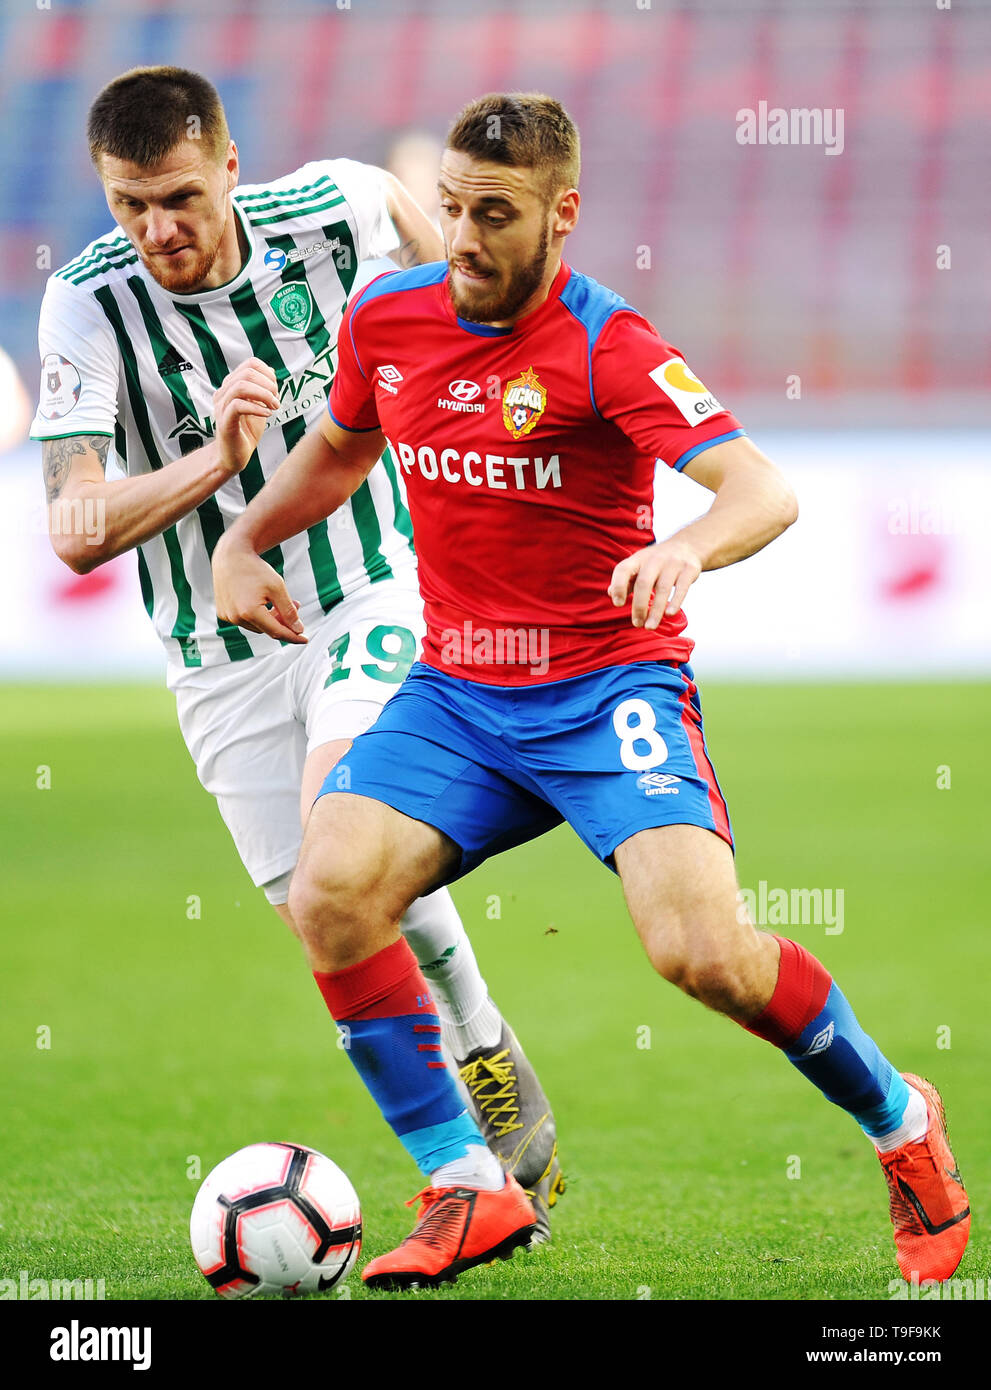 Moscow, Russia. 18th May, 2019. MOSCOW, RUSSIA - MAY 18: Nikola Vlasic of PFC CSKA Moscow and Oleg Ivanov of FC Akhmat Grozny vie for the ball during the Russian Football League match between PFC CSKA Moscow and FC Akhmat Grozny at Arena CSKA stadium on May 18, 2019 in Moscow, Russia. (Photo by Epsilon/Getty Images) Credit: ITAR-TASS News Agency/Alamy Live News - Stock Image